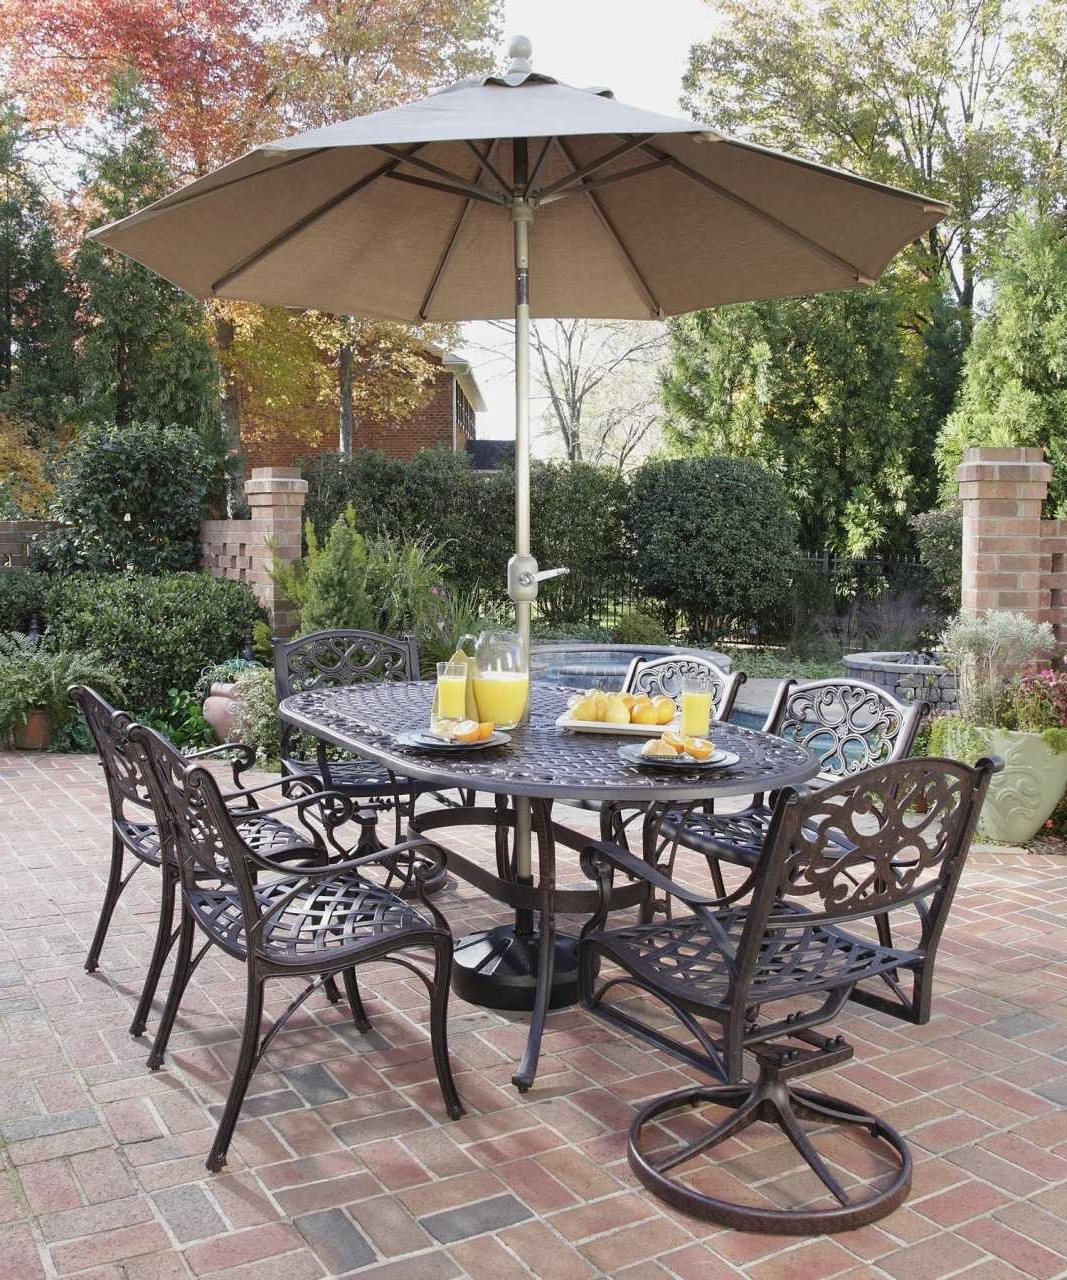 Patio Table And Chairs With Umbrellas With Regard To Trendy Fascinating Patio Table Sets With Umbrella Trends Including Cheap (View 8 of 20)